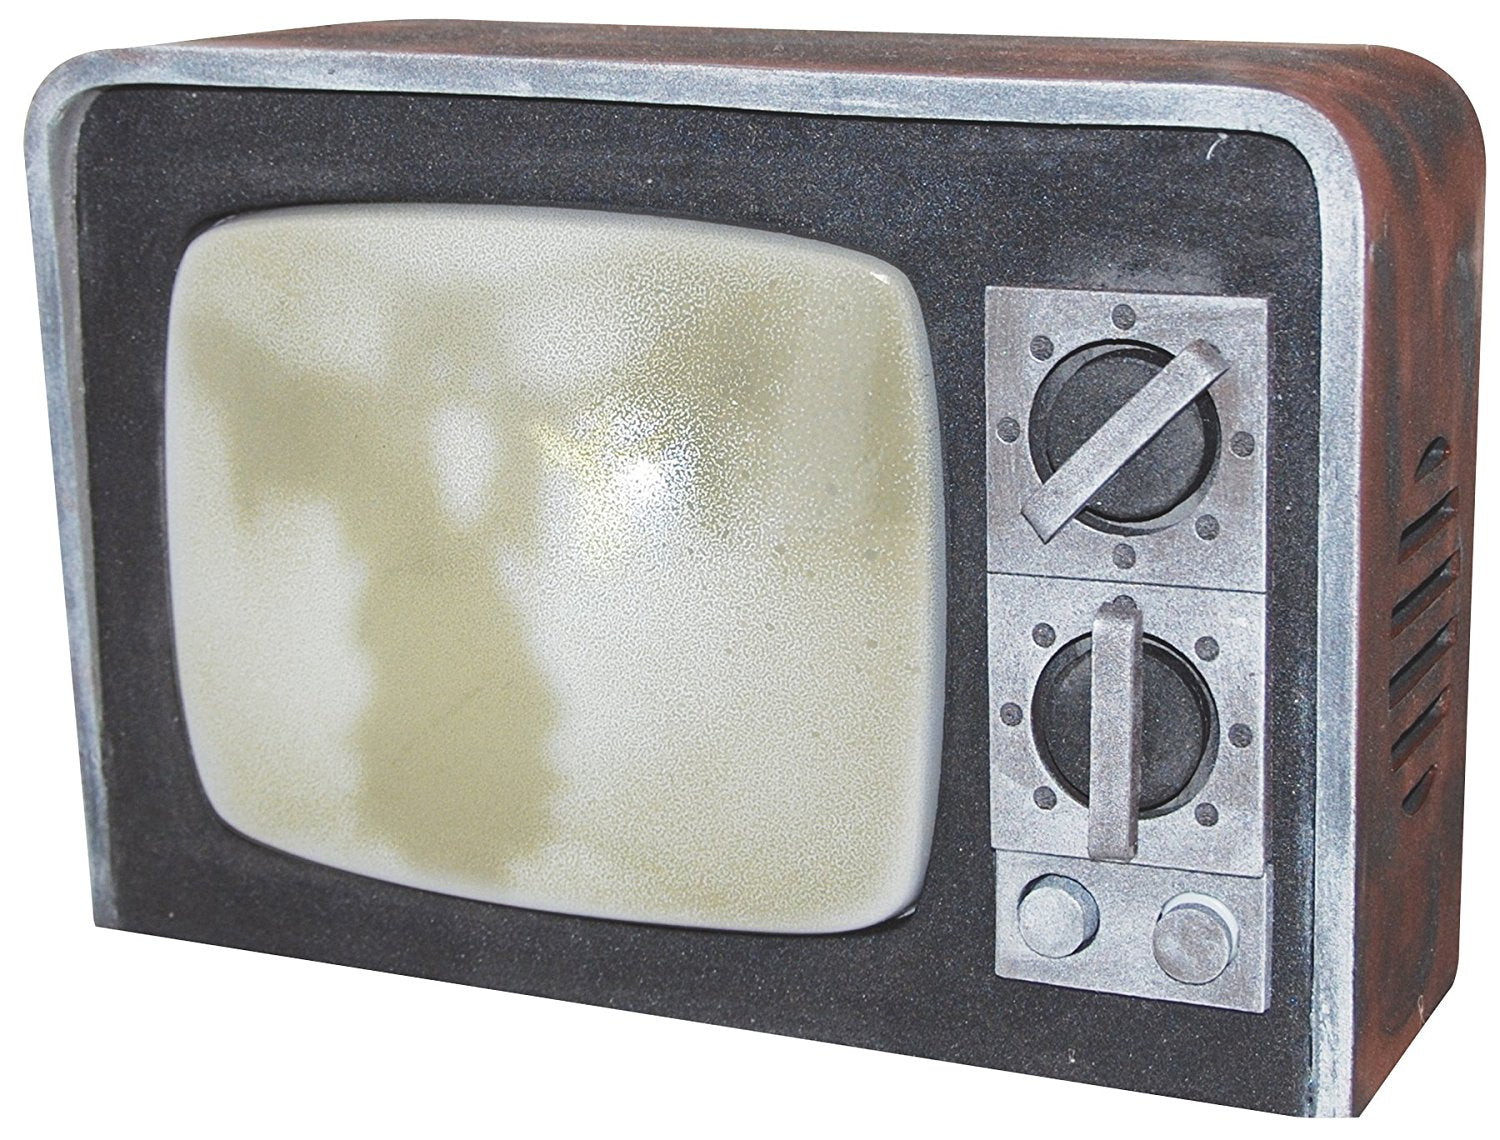 Haunted Halloween TV - Television Prop with Spooky Sounds